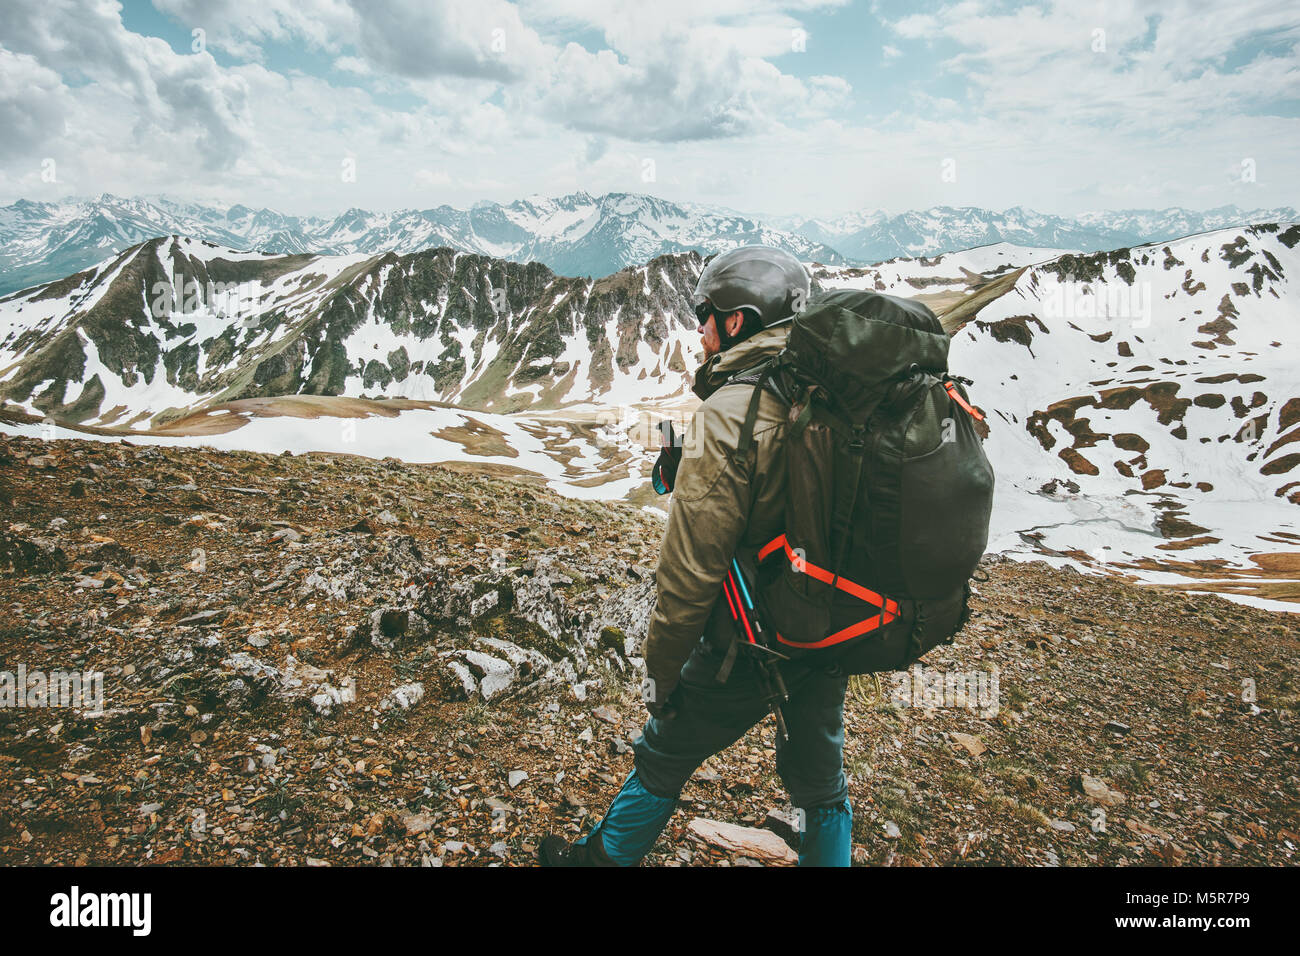 Man traveler with big backpack hiking in mountains expedition Travel survival lifestyle concept adventure outdoor - Stock Image